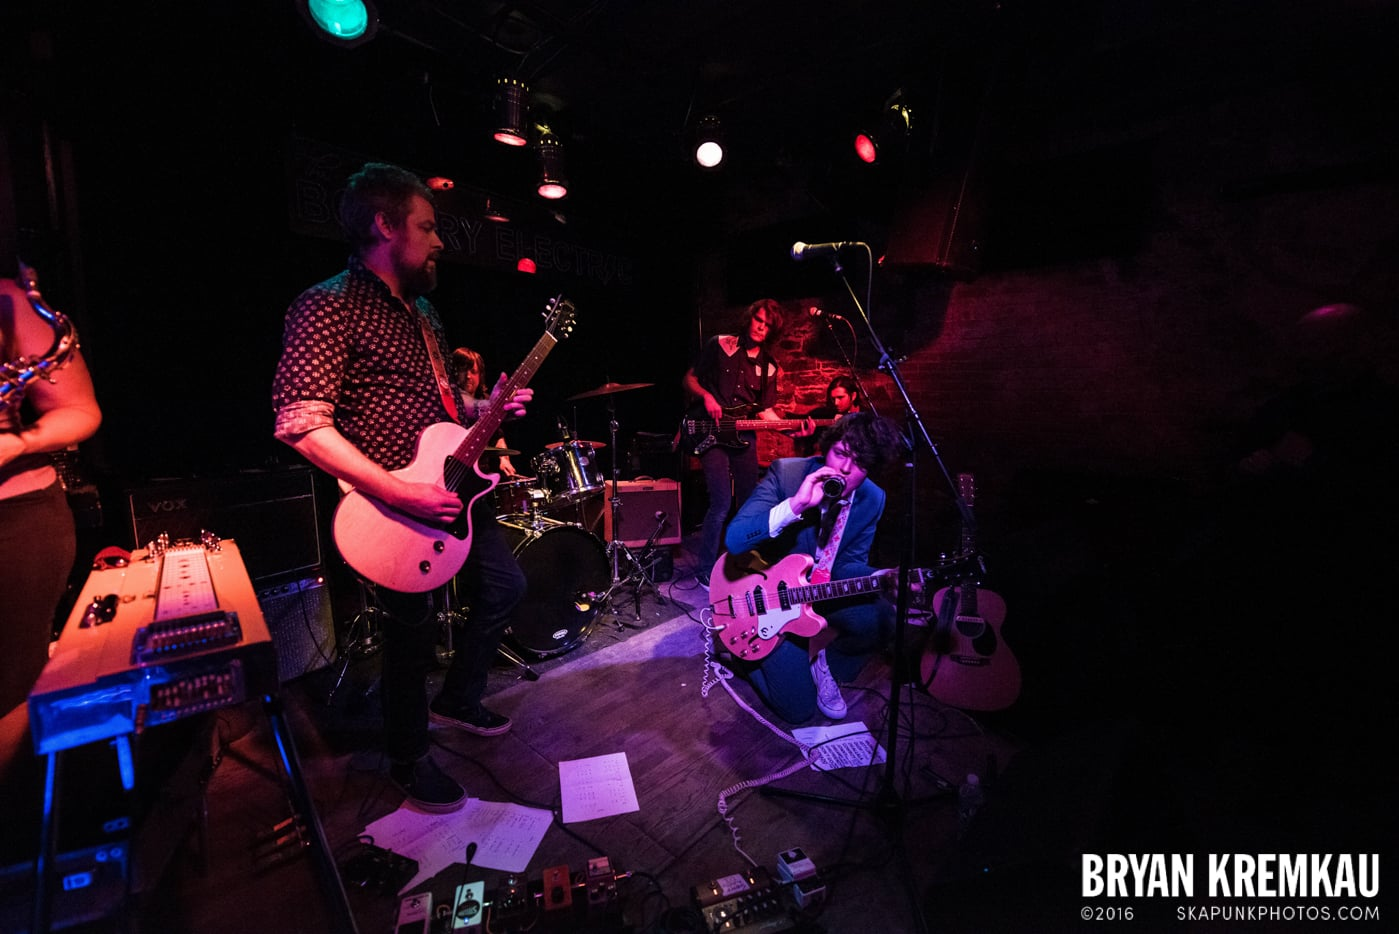 Trapper Schoepp & The Shades @ Bowery Electric, NYC - 11.20.14 (17)